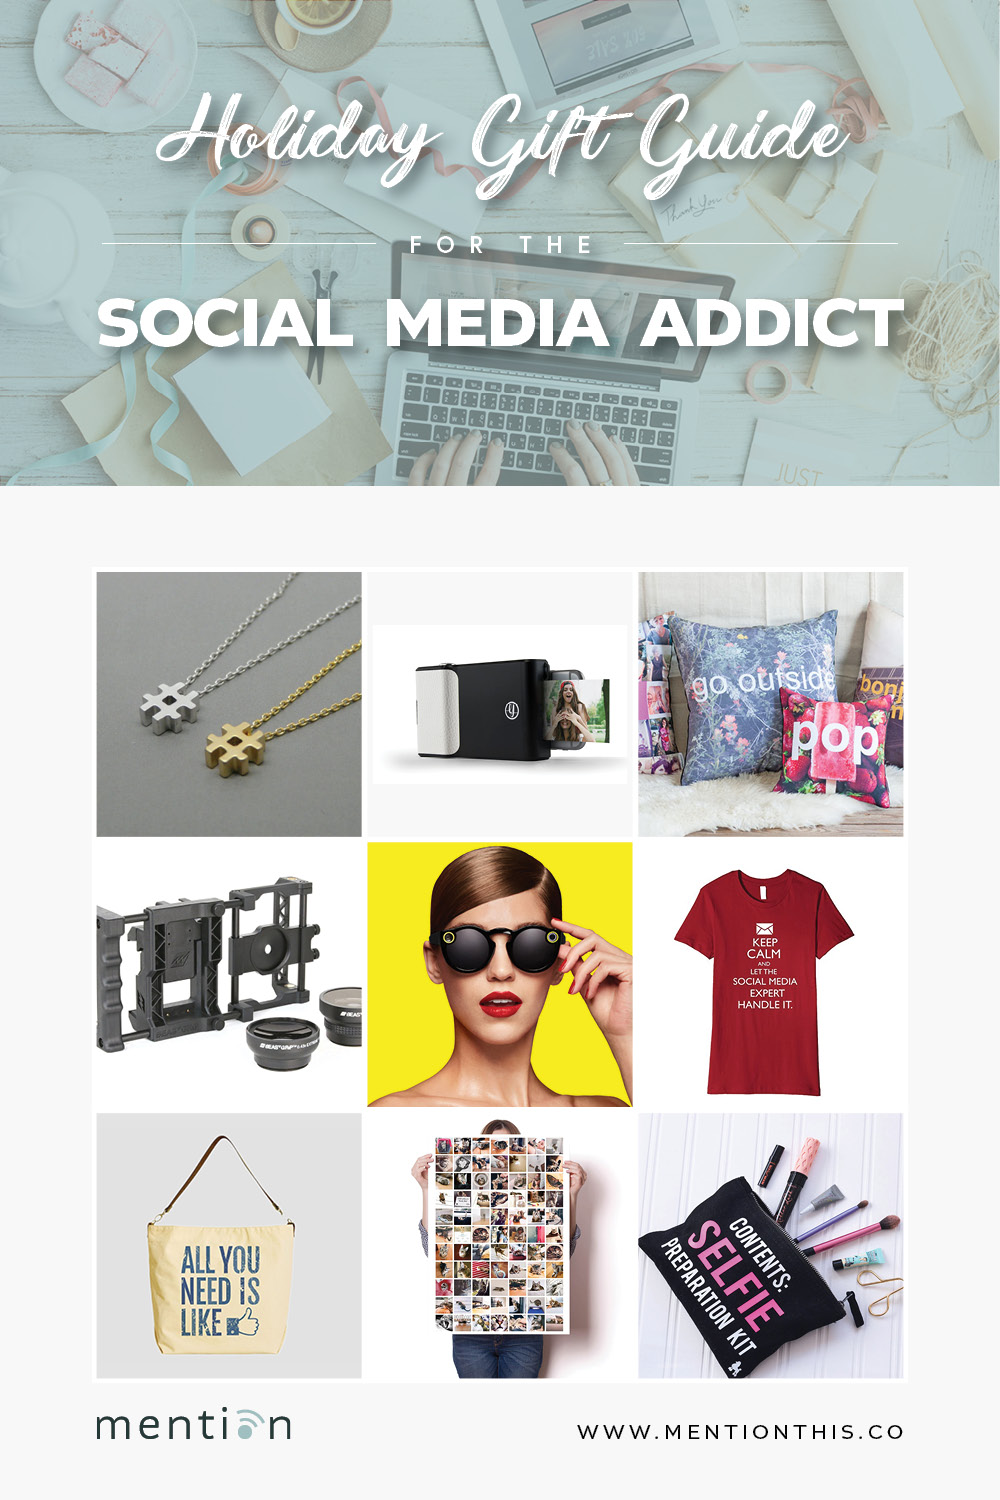 Holiday Gift Guide for the Social Media Addict